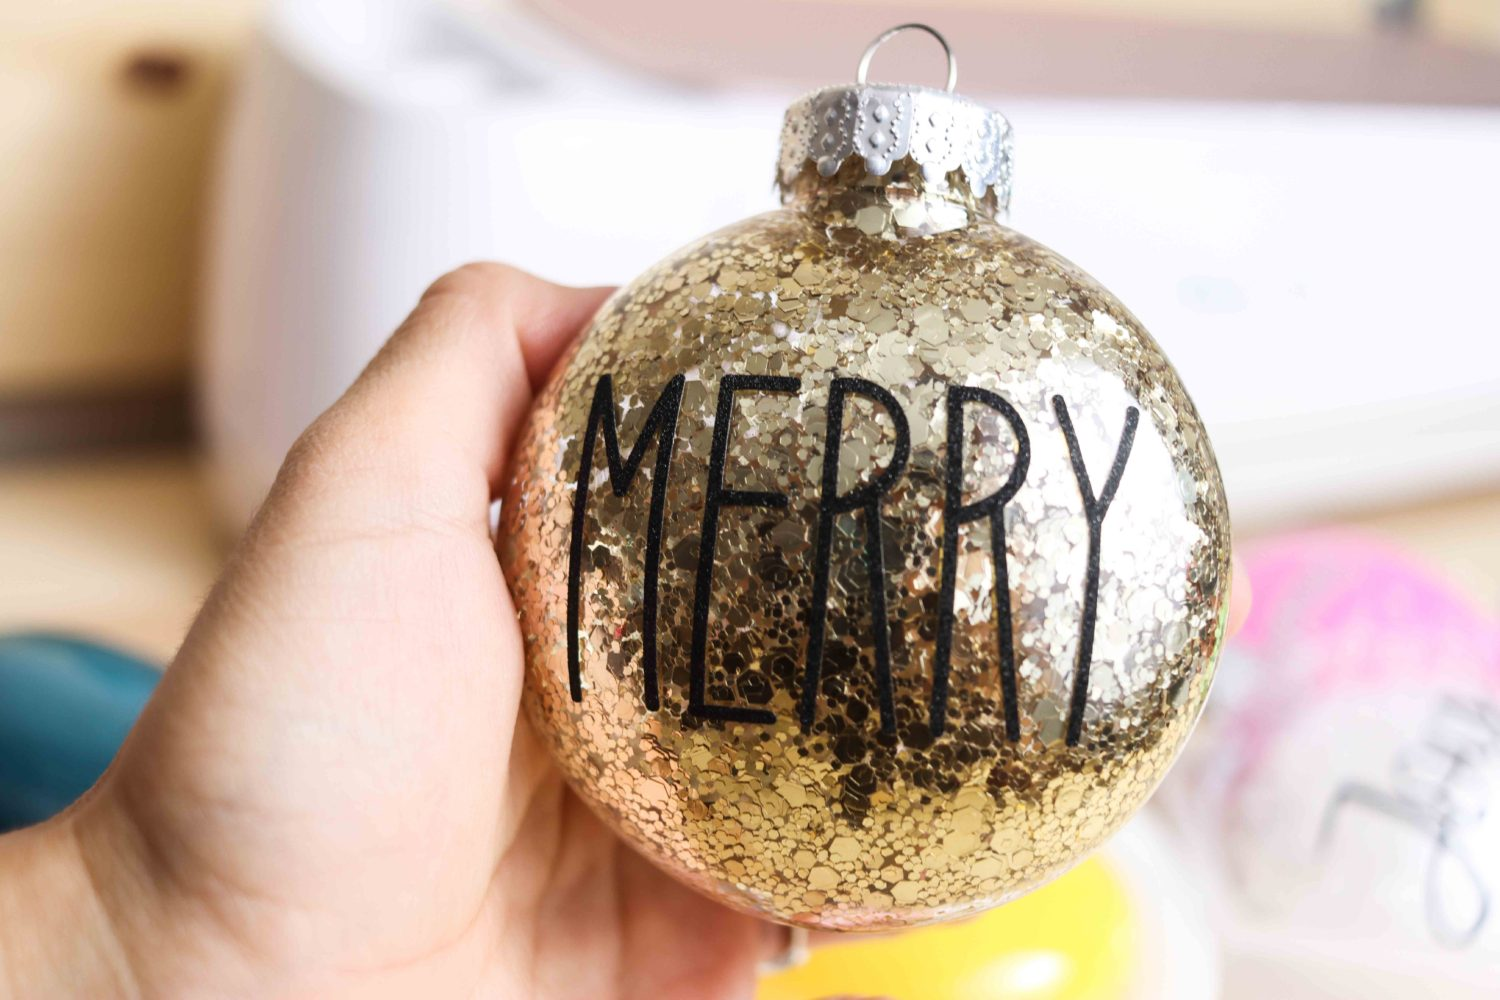 Merry christmas ornaments decorated with Cricut Maker